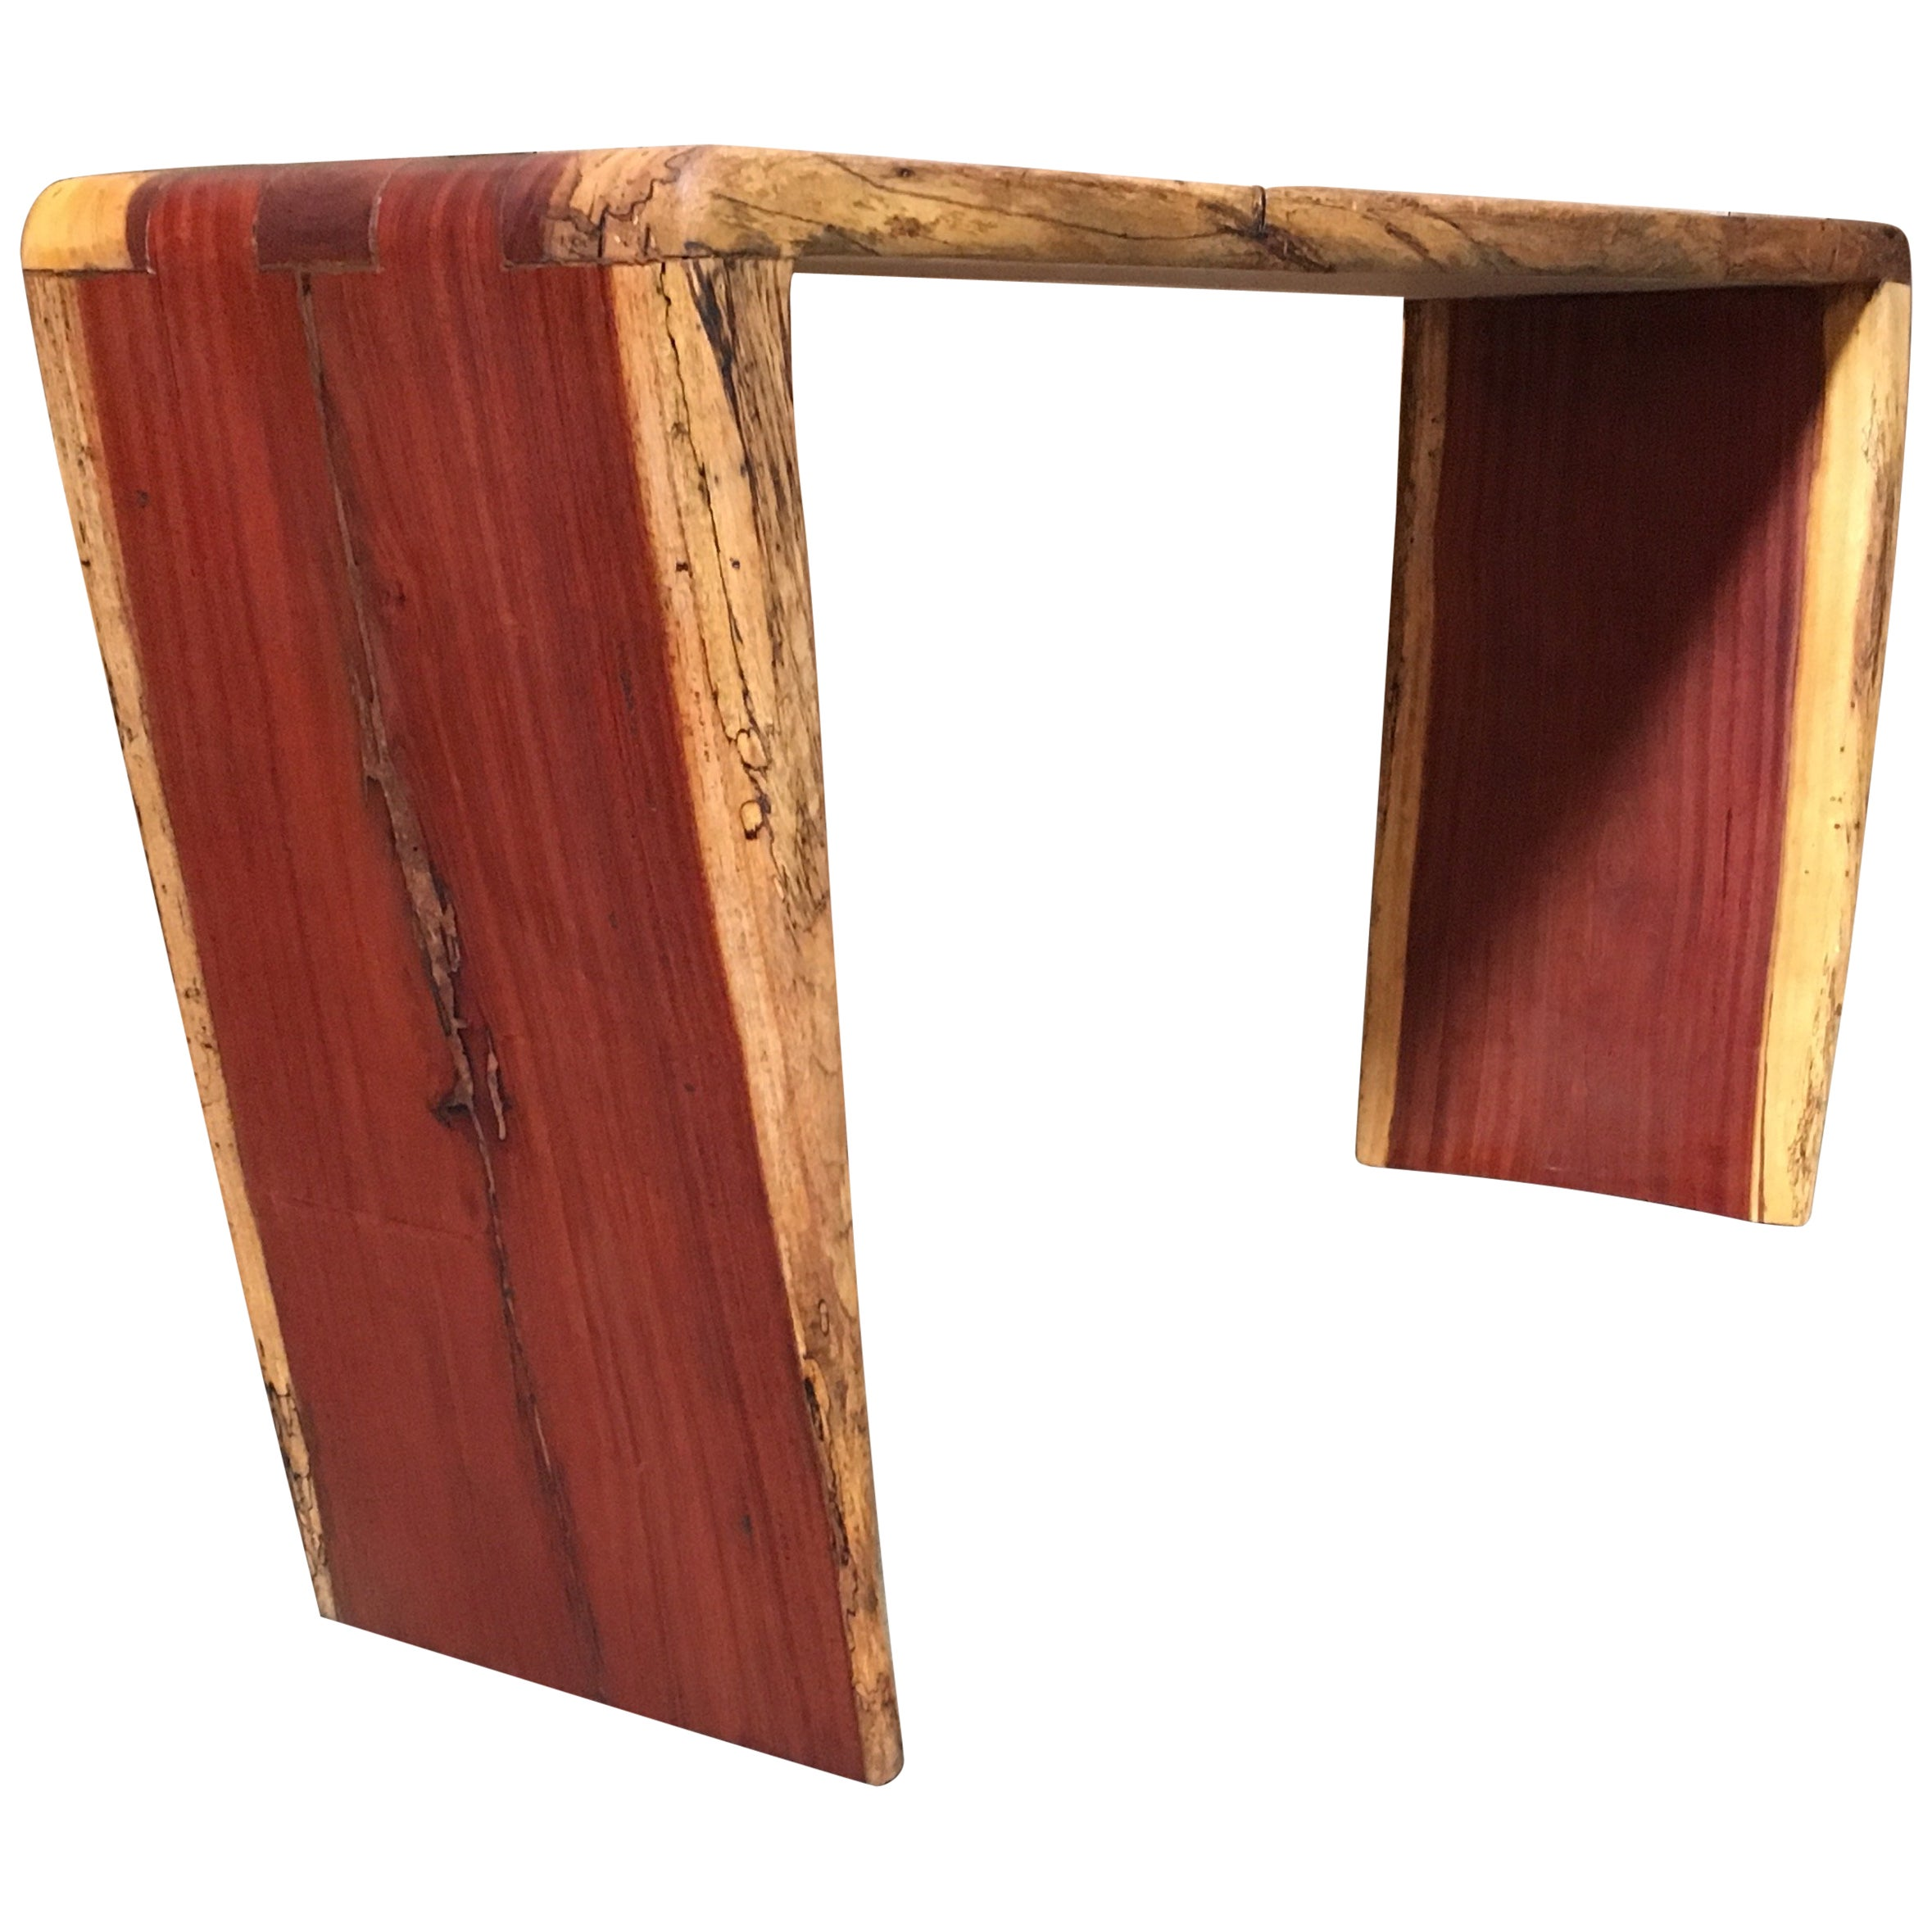 Modernist Rustic Console Table by Tunico T.